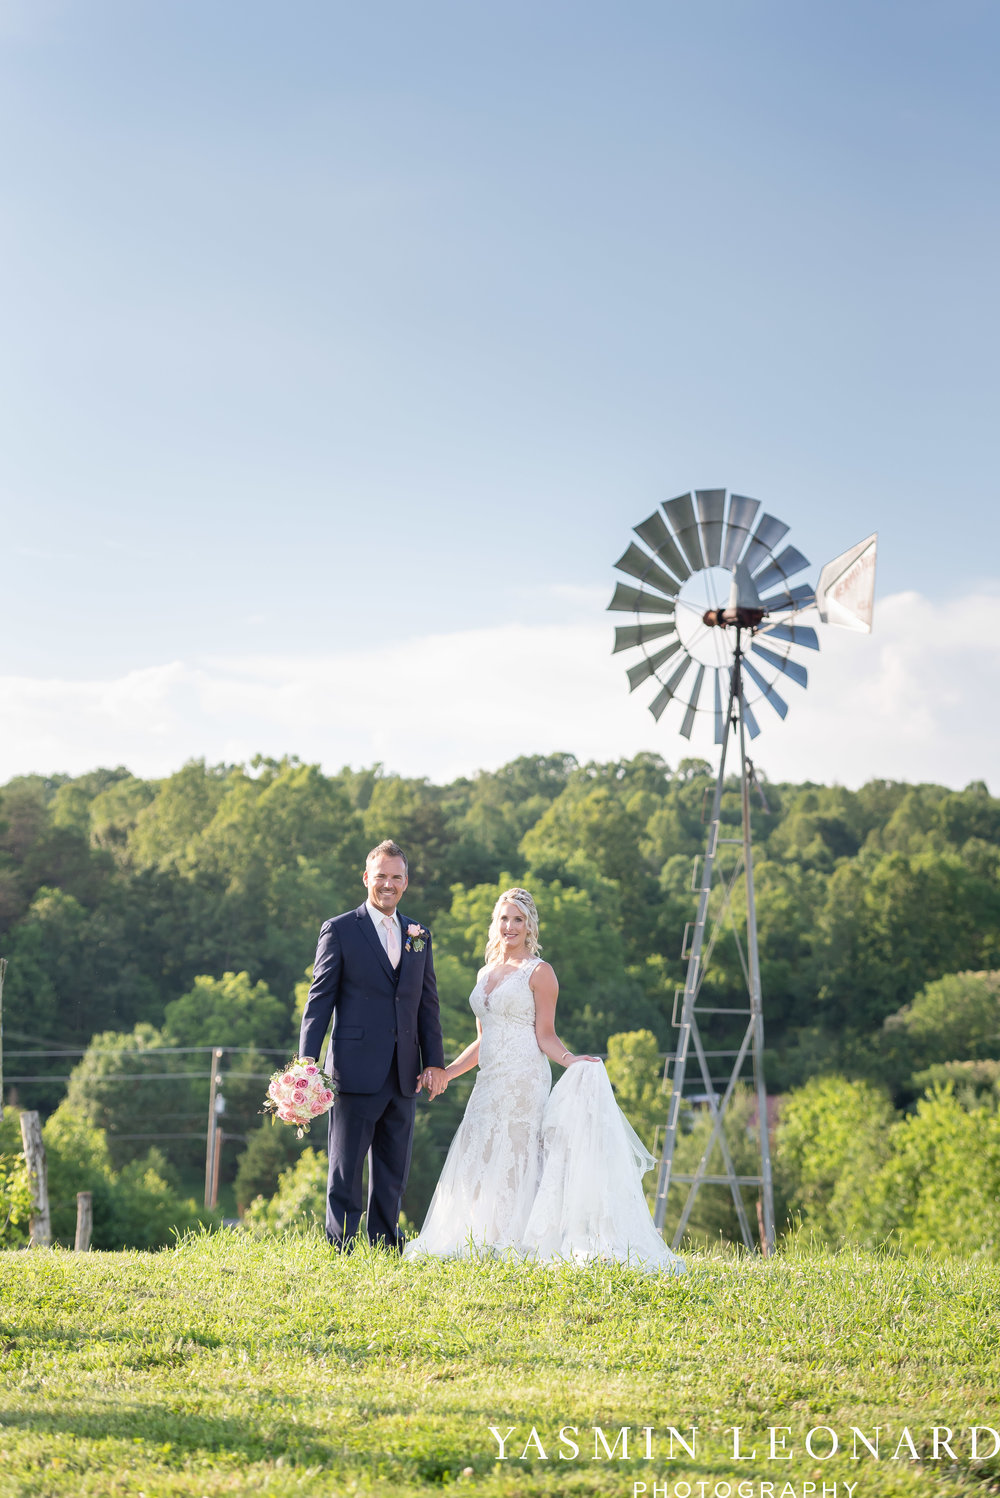 Elkin Creek Vineyard - Elkin Creek Weddings - NC Wine - NC Wineries - NC Weddings - NC Photographers - NC Wedding Photographer - NC Winery Wedding Ideas - Yasmin Leonard Photography - High Point Wedding Photographer-59.jpg